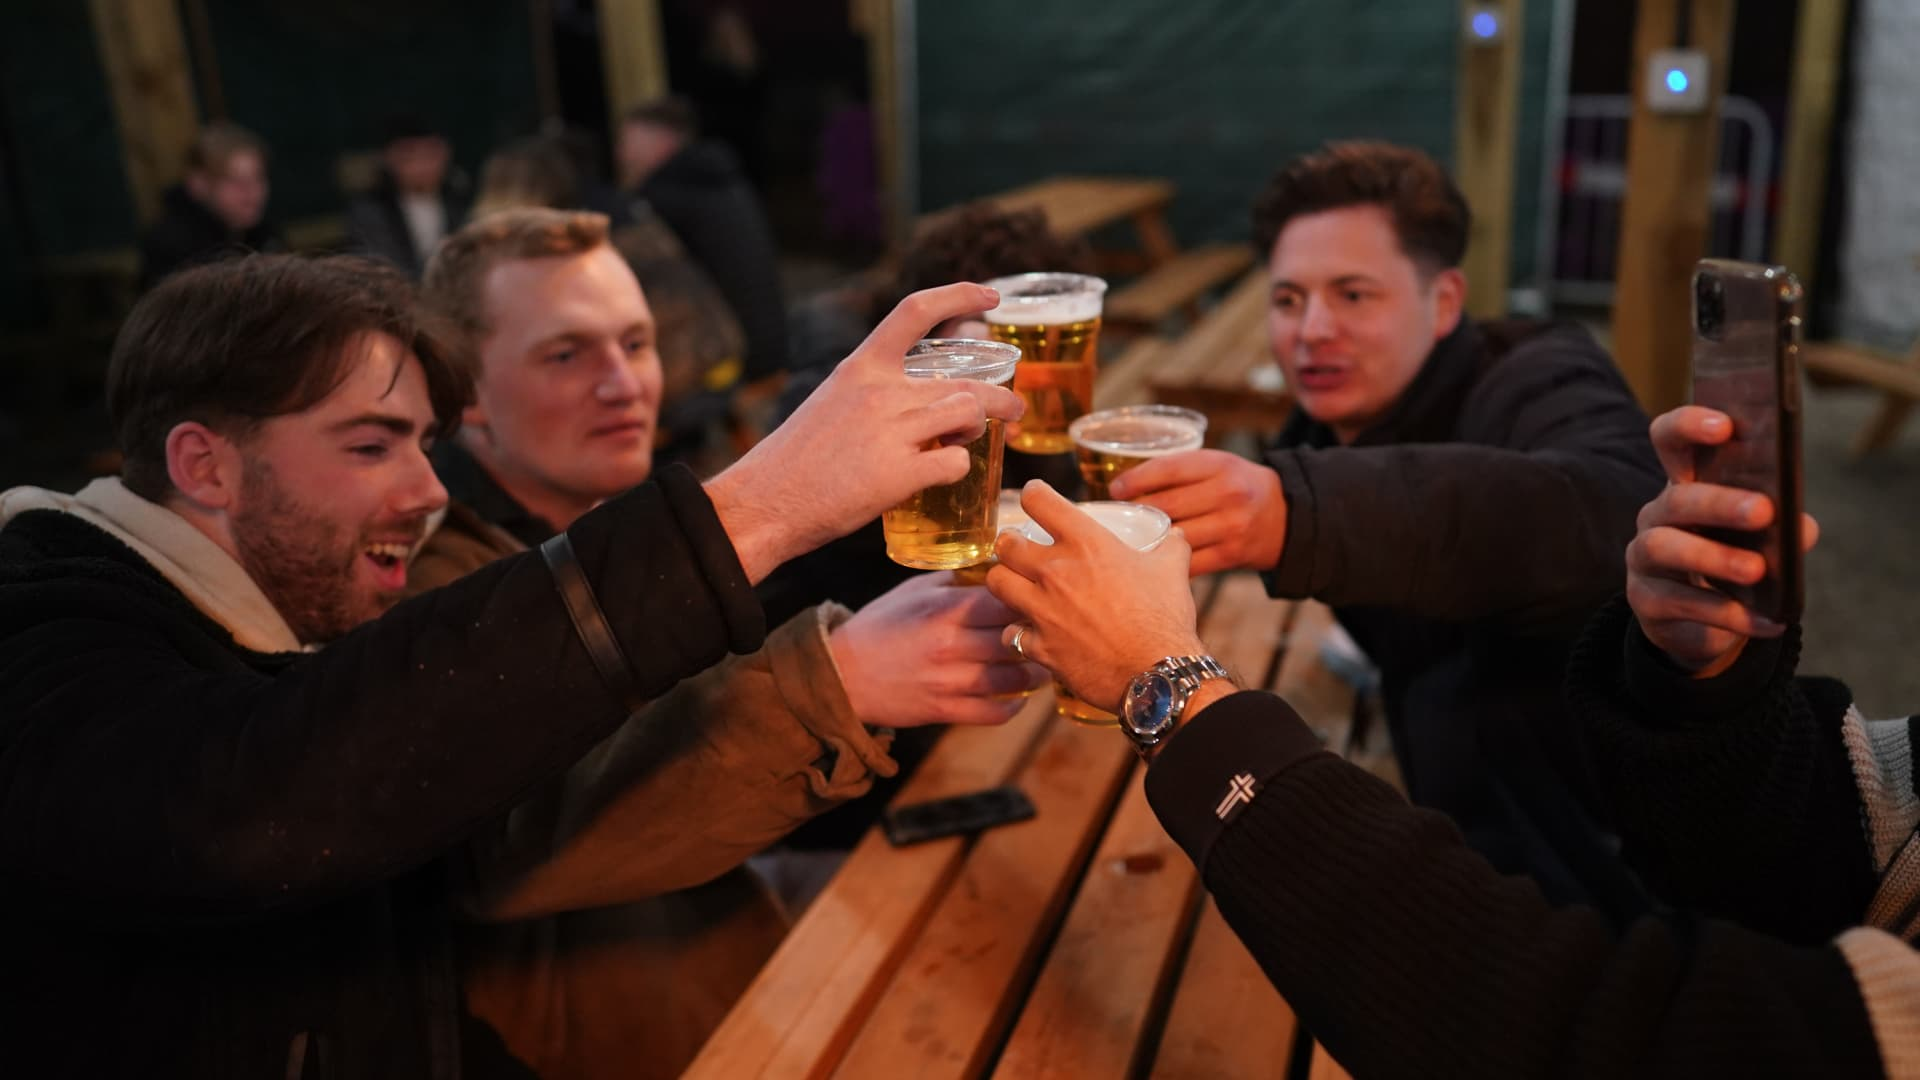 Friends make a toast as they enjoy a drink at the Switch bar in Newcastle shortly after midnight following the easing of lockdown measures on April 12, 2021 in Newcastle Upon Tyne, England.